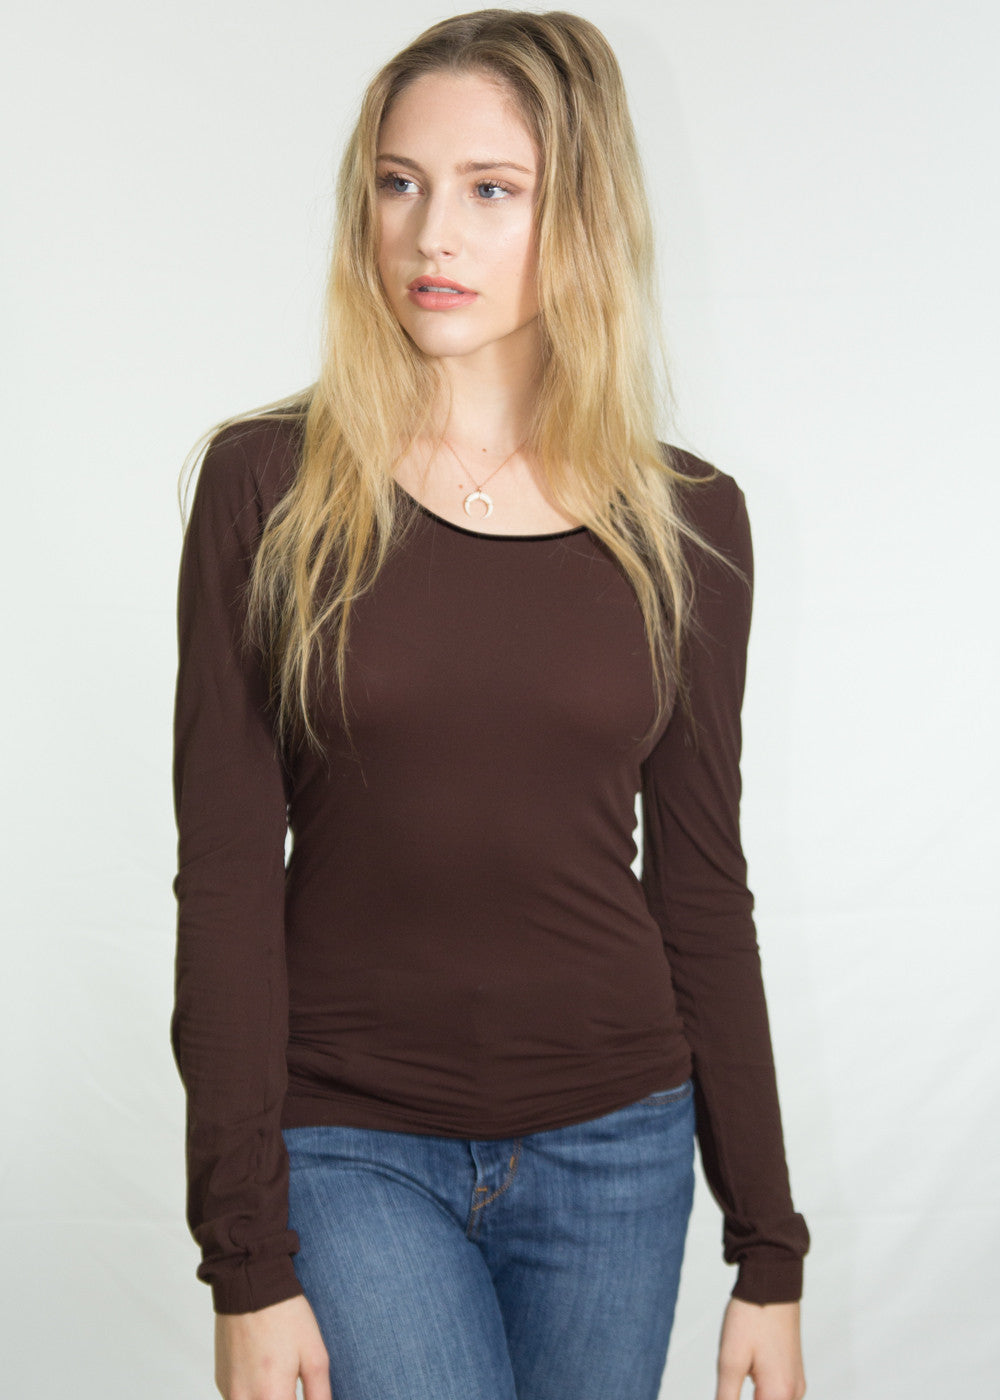 Luna Crew Neck Sheer Top XL